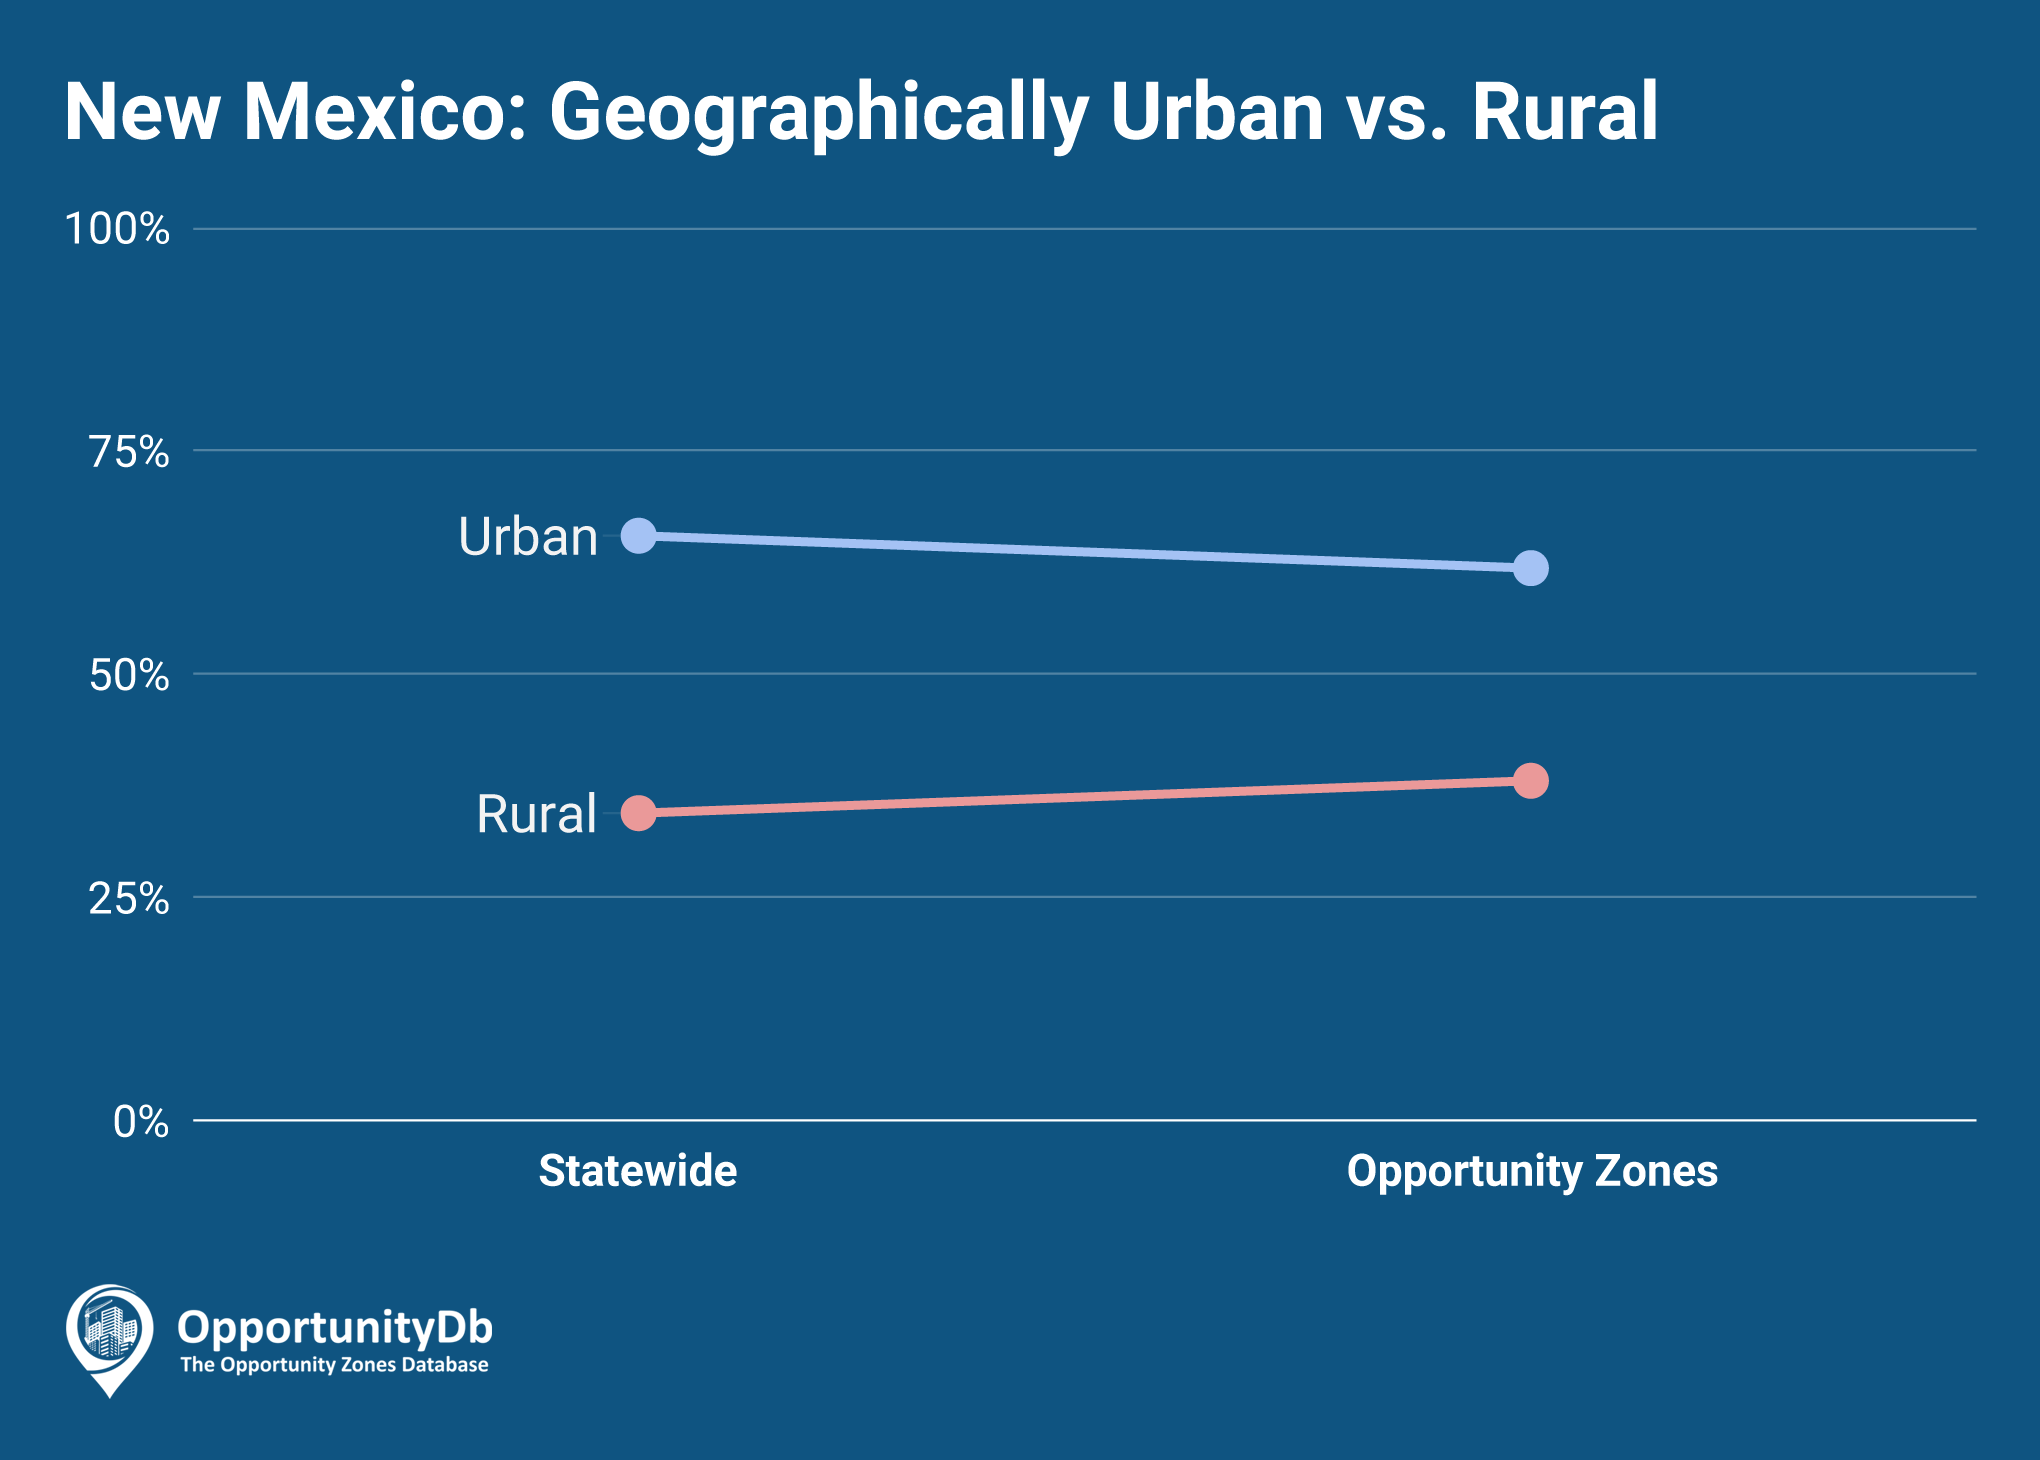 Urban vs. Rural in New Mexico Opportunity Zones